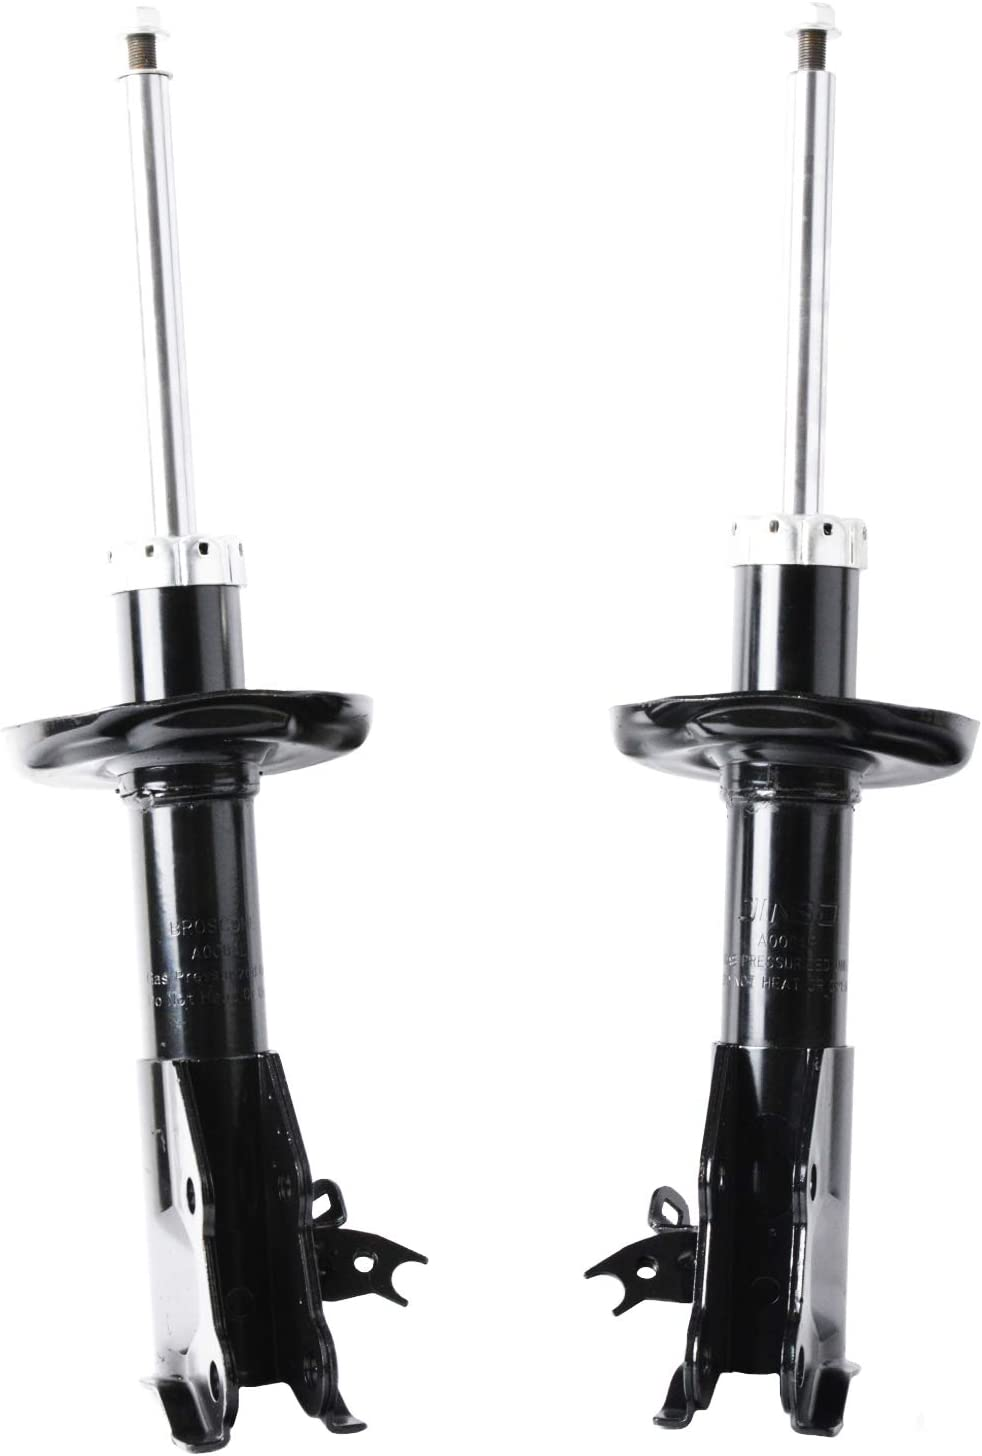 Front Pair Shock Absorber For Honda Civic 2006 20 Manufacturer Max 87% OFF regenerated product 2007 2008 2009